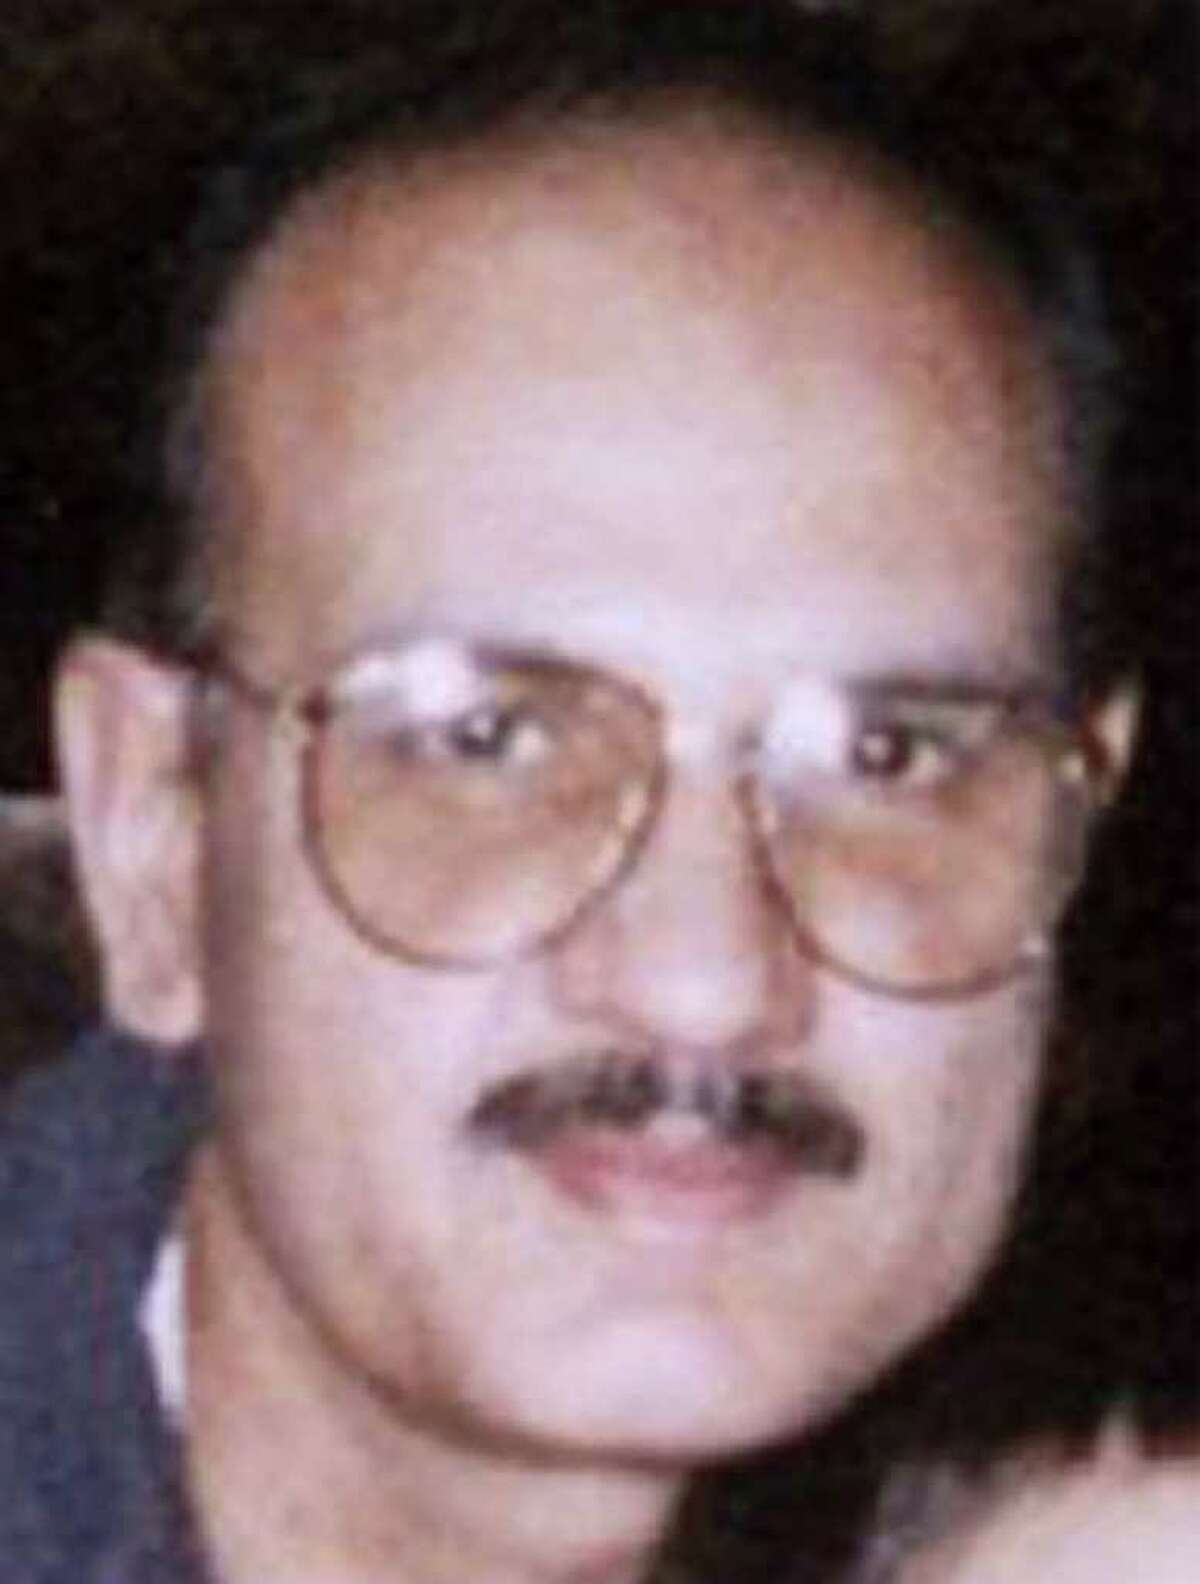 Wagar Hasan was killed at his Dallas convenience store in a hate crime motivated by the 9/11 attacks.